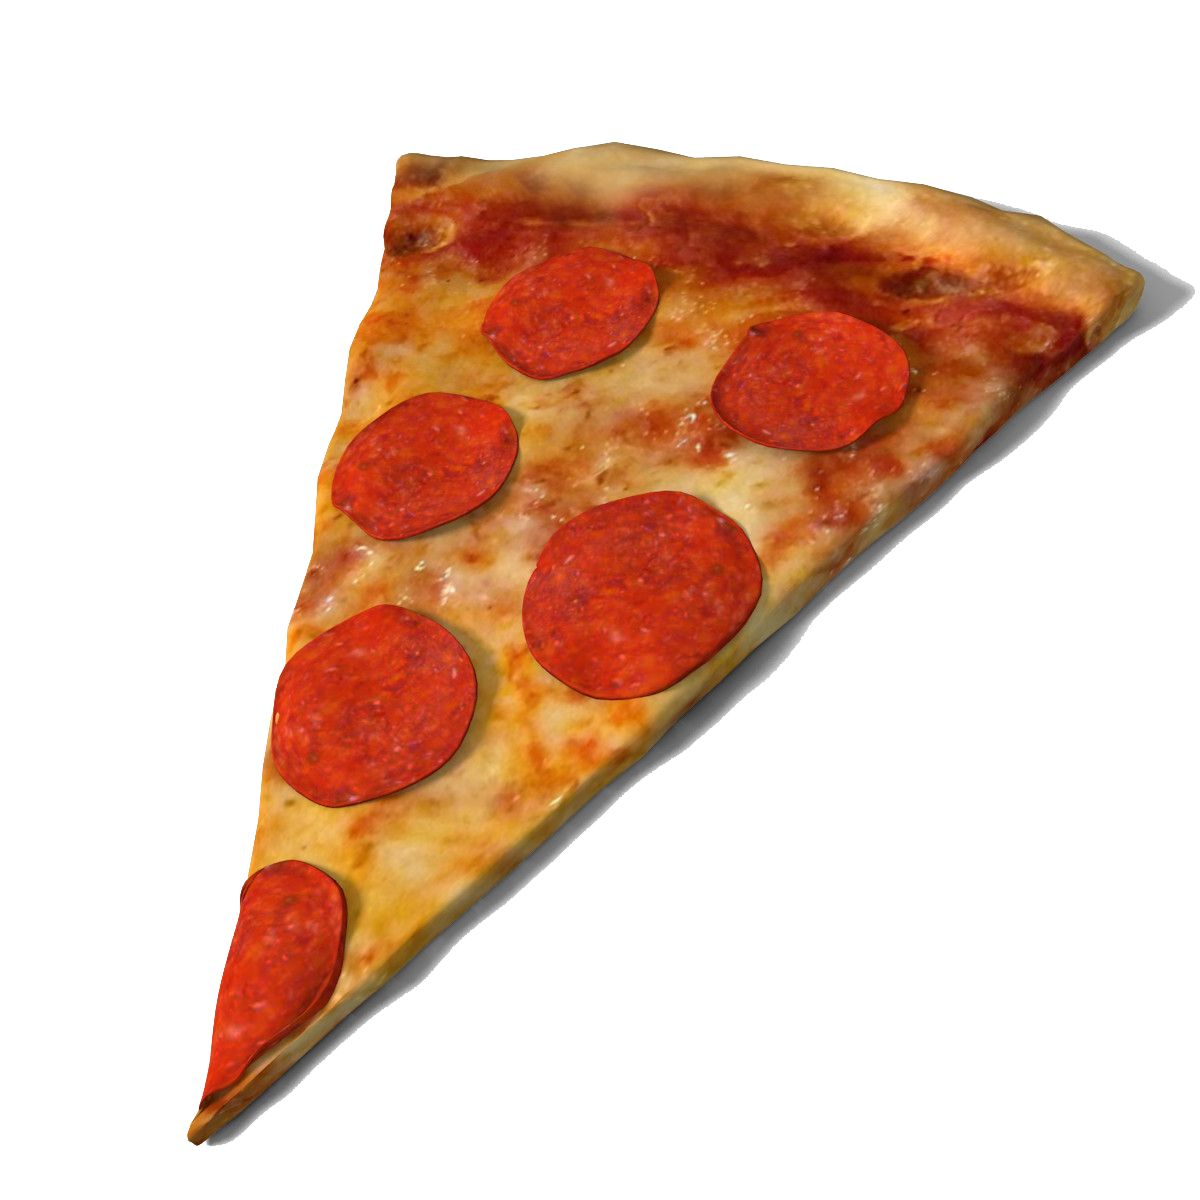 Pizza Slice Free Download PNG Image